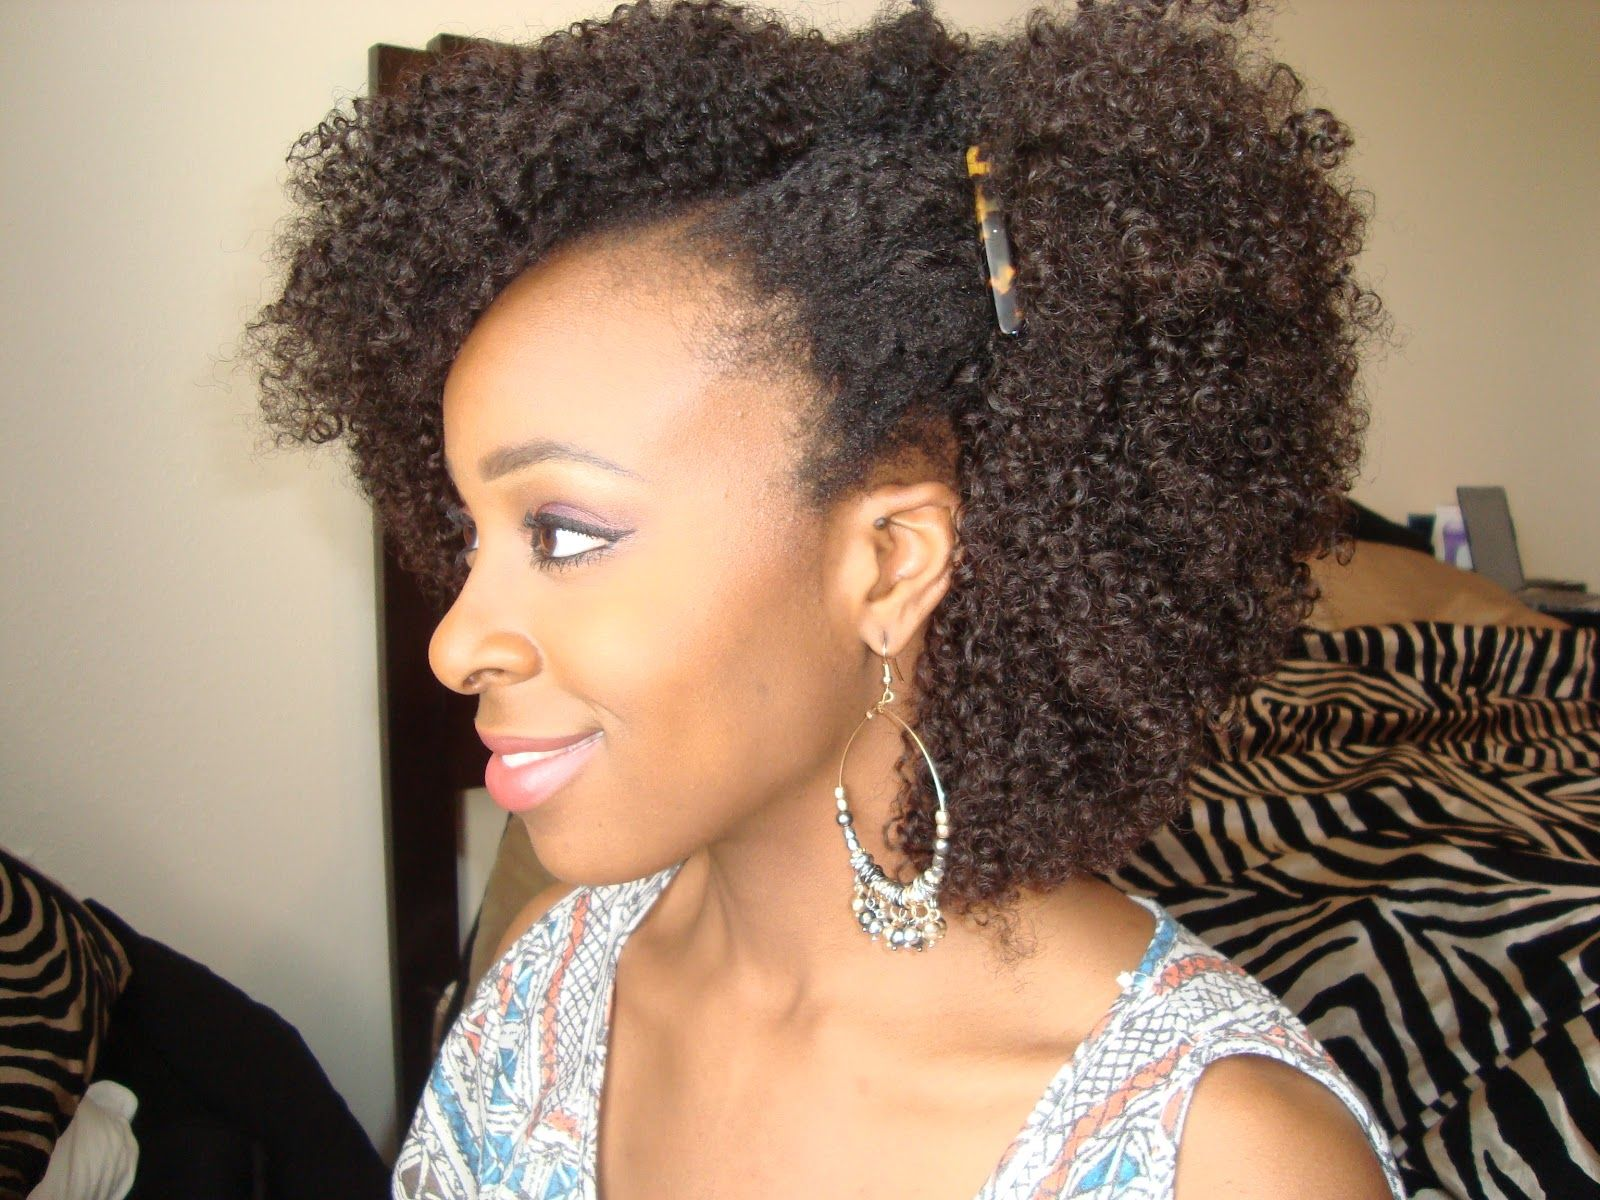 natural afro the afro is a chic, natural hairstyle wornafrican